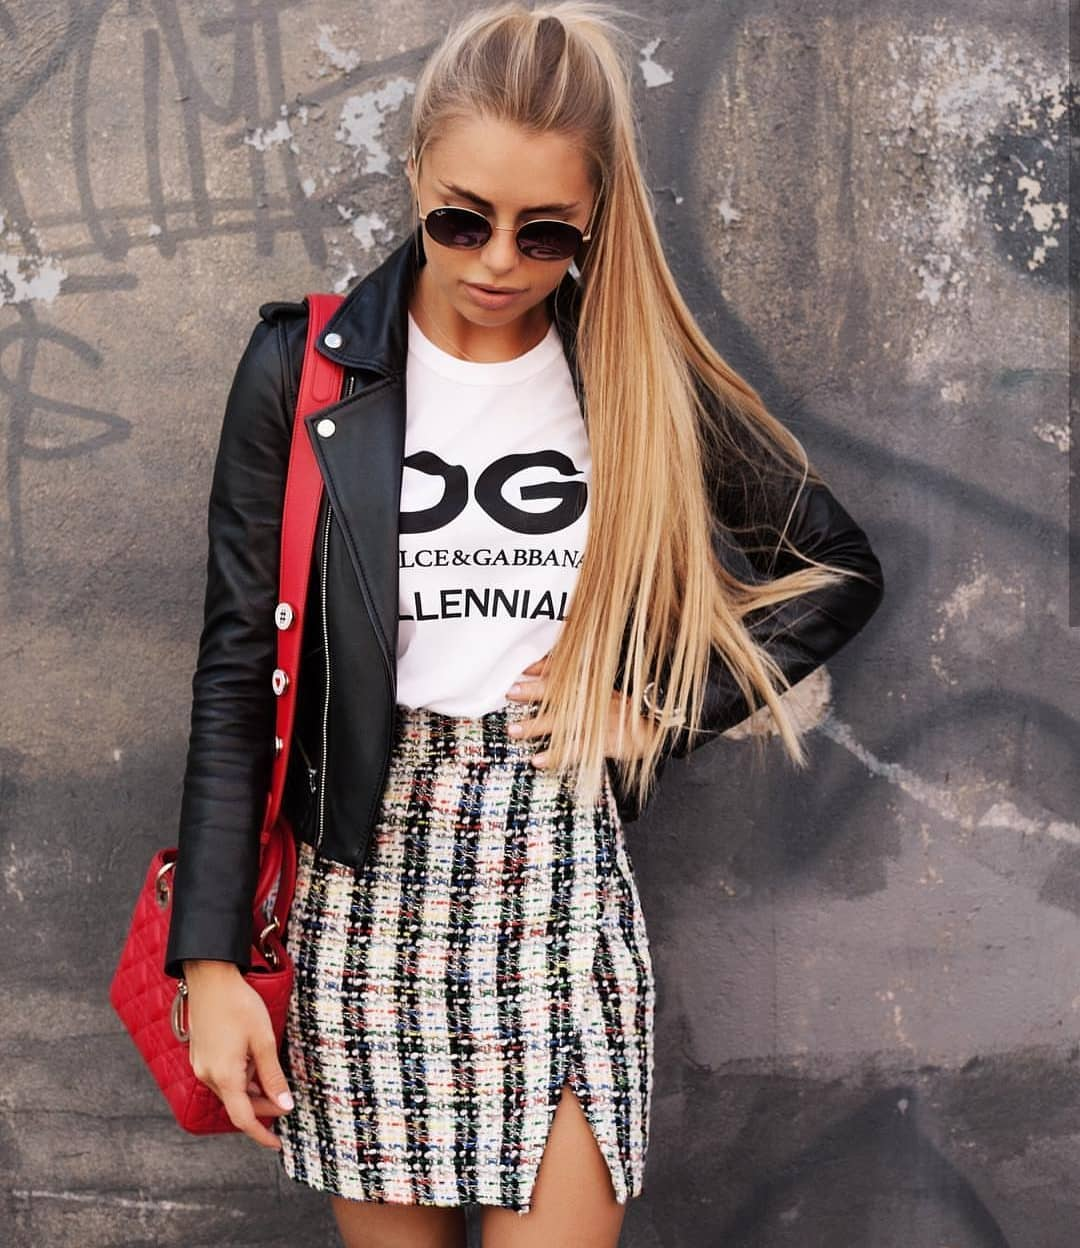 Black Leather Jacket And Plaid Print Mini Skirt For Spring 2019